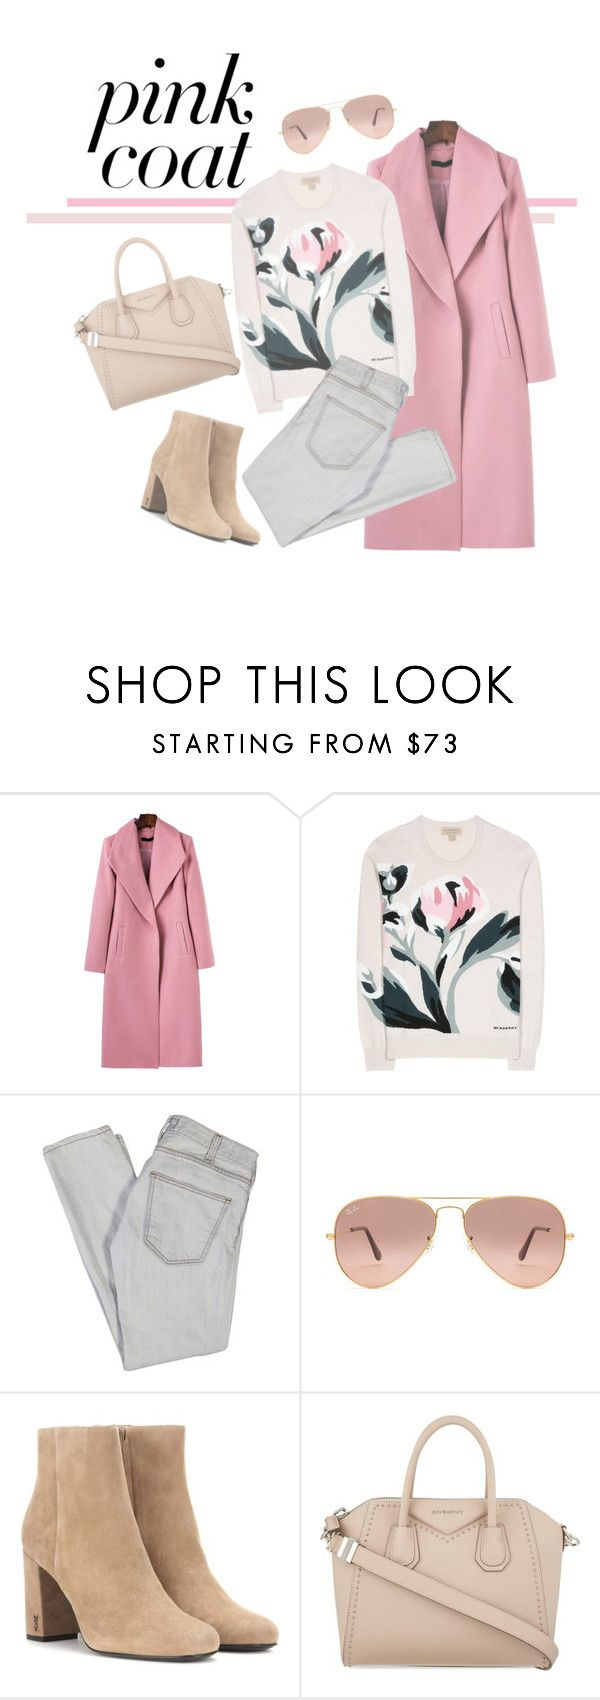 """""""no. 5"""" by cloud-free ❤ liked on Polyvore featuring Burberry, Current/Elliott, Ray-Ban, Yves Saint Laurent, Givenchy, Flowers, classy and pinkcoats"""